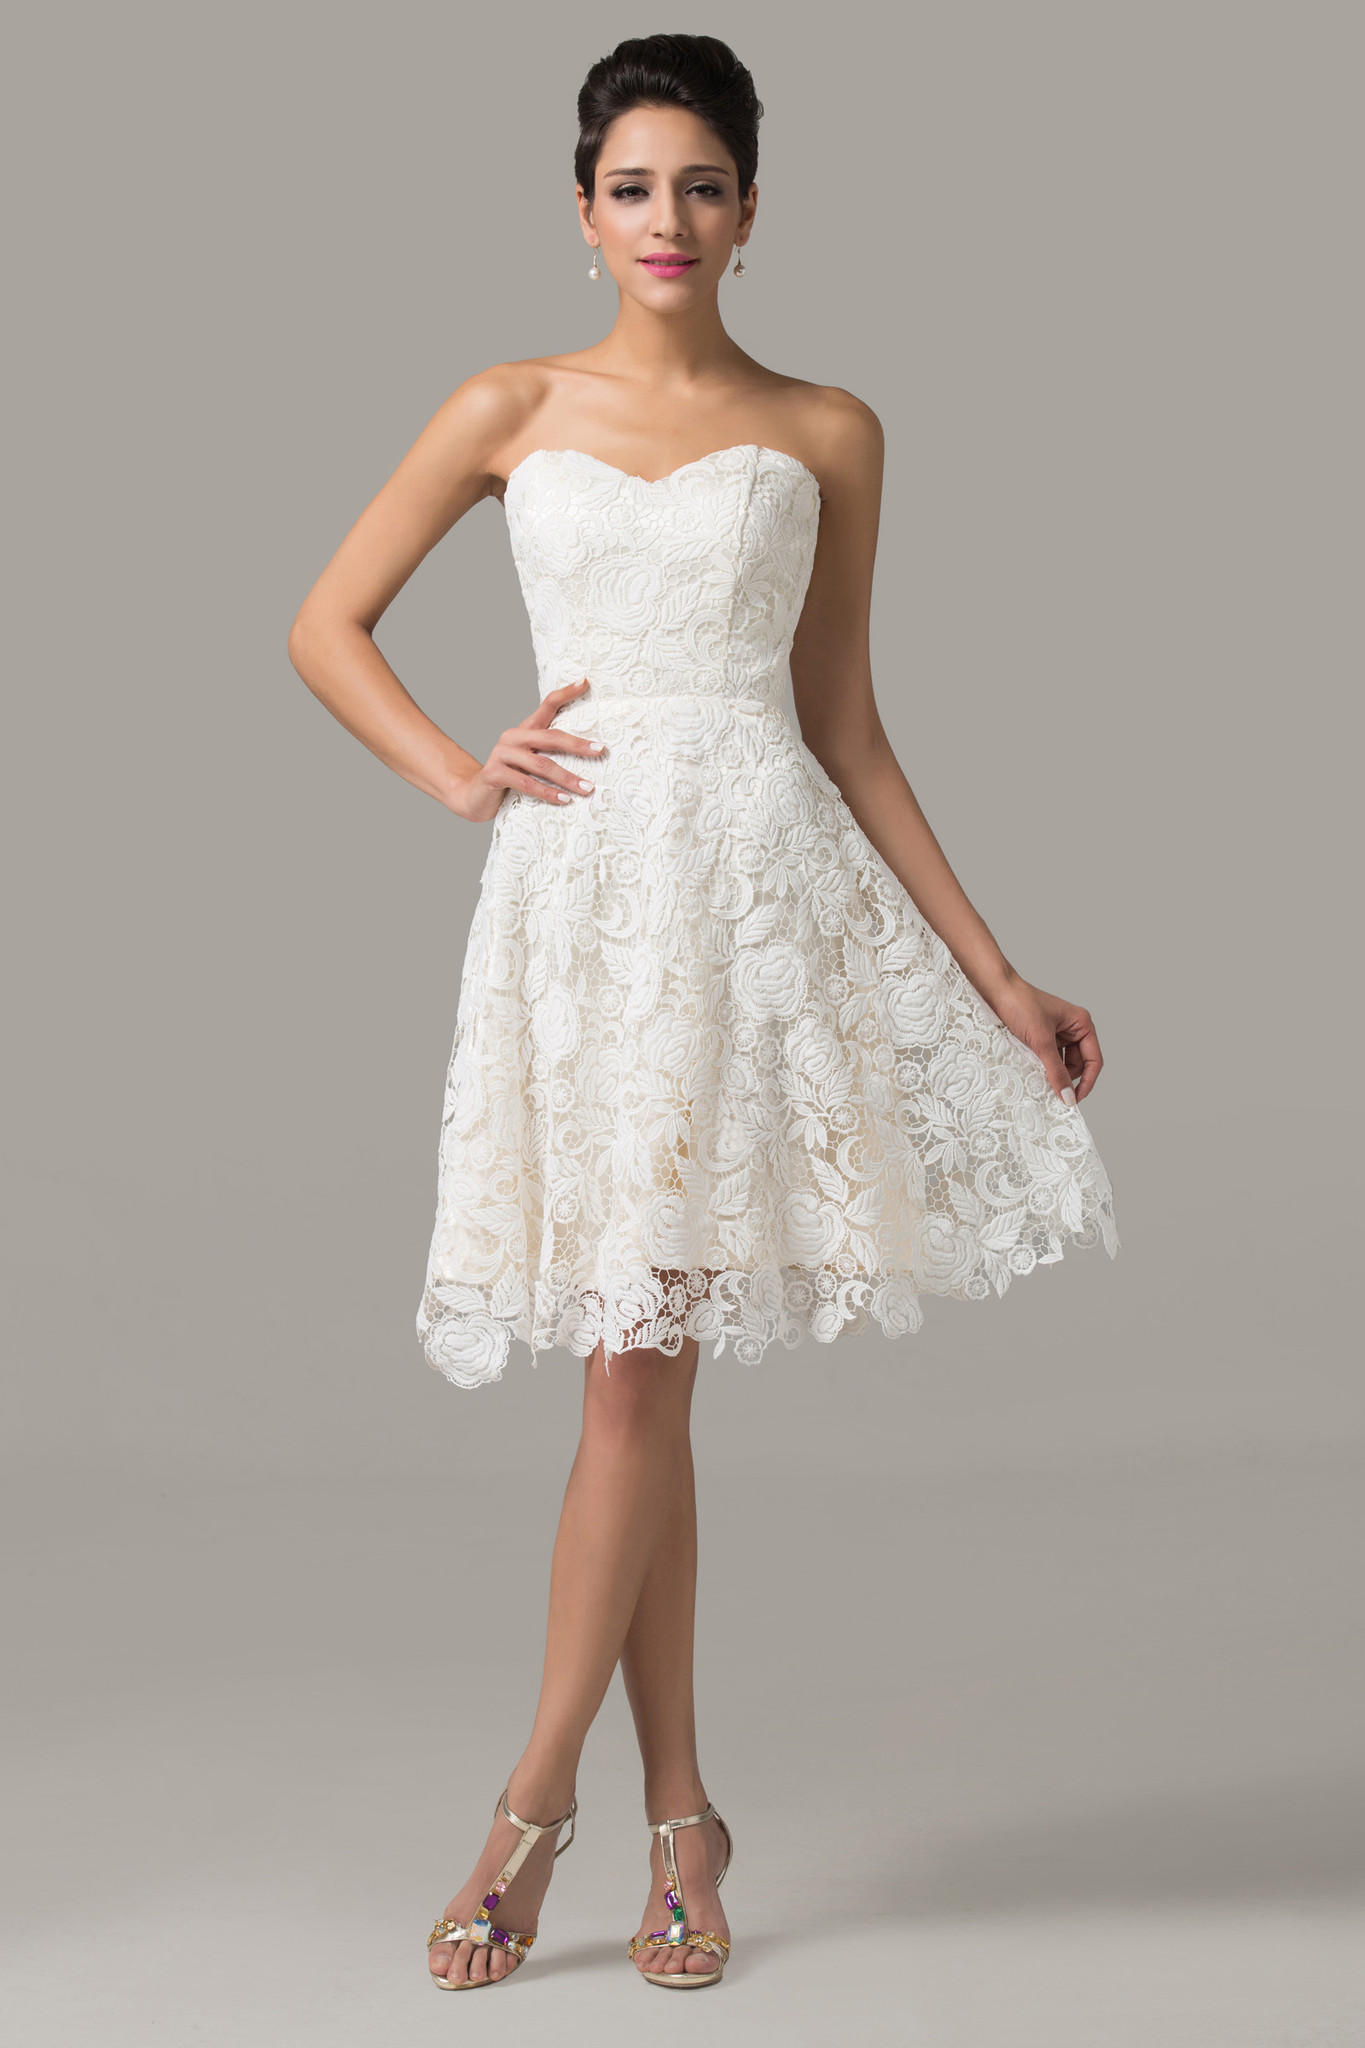 ivory strapless lace homecoming dress from graciella 39 s short. Black Bedroom Furniture Sets. Home Design Ideas